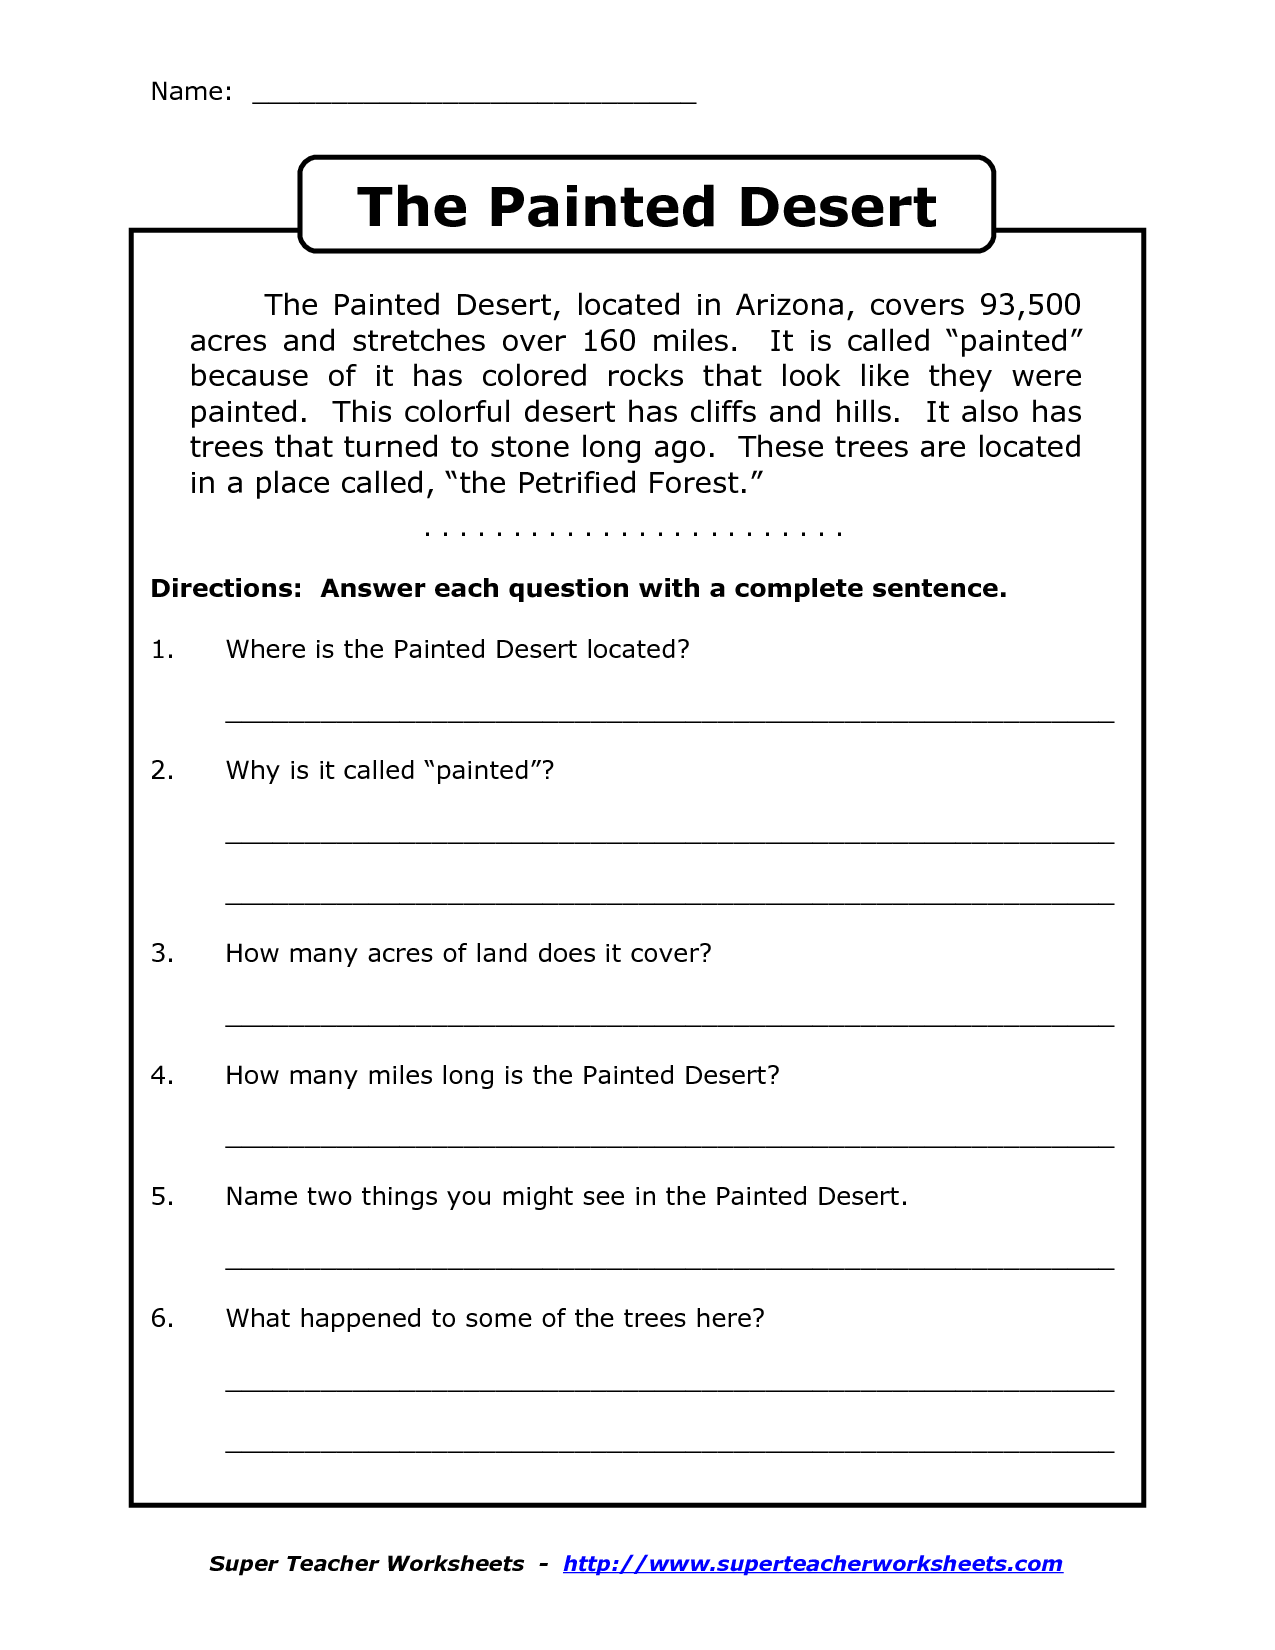 Worksheets Third Grade Comprehension Worksheets reading worksheets for 4th grade comprehension 3 name the painted desert